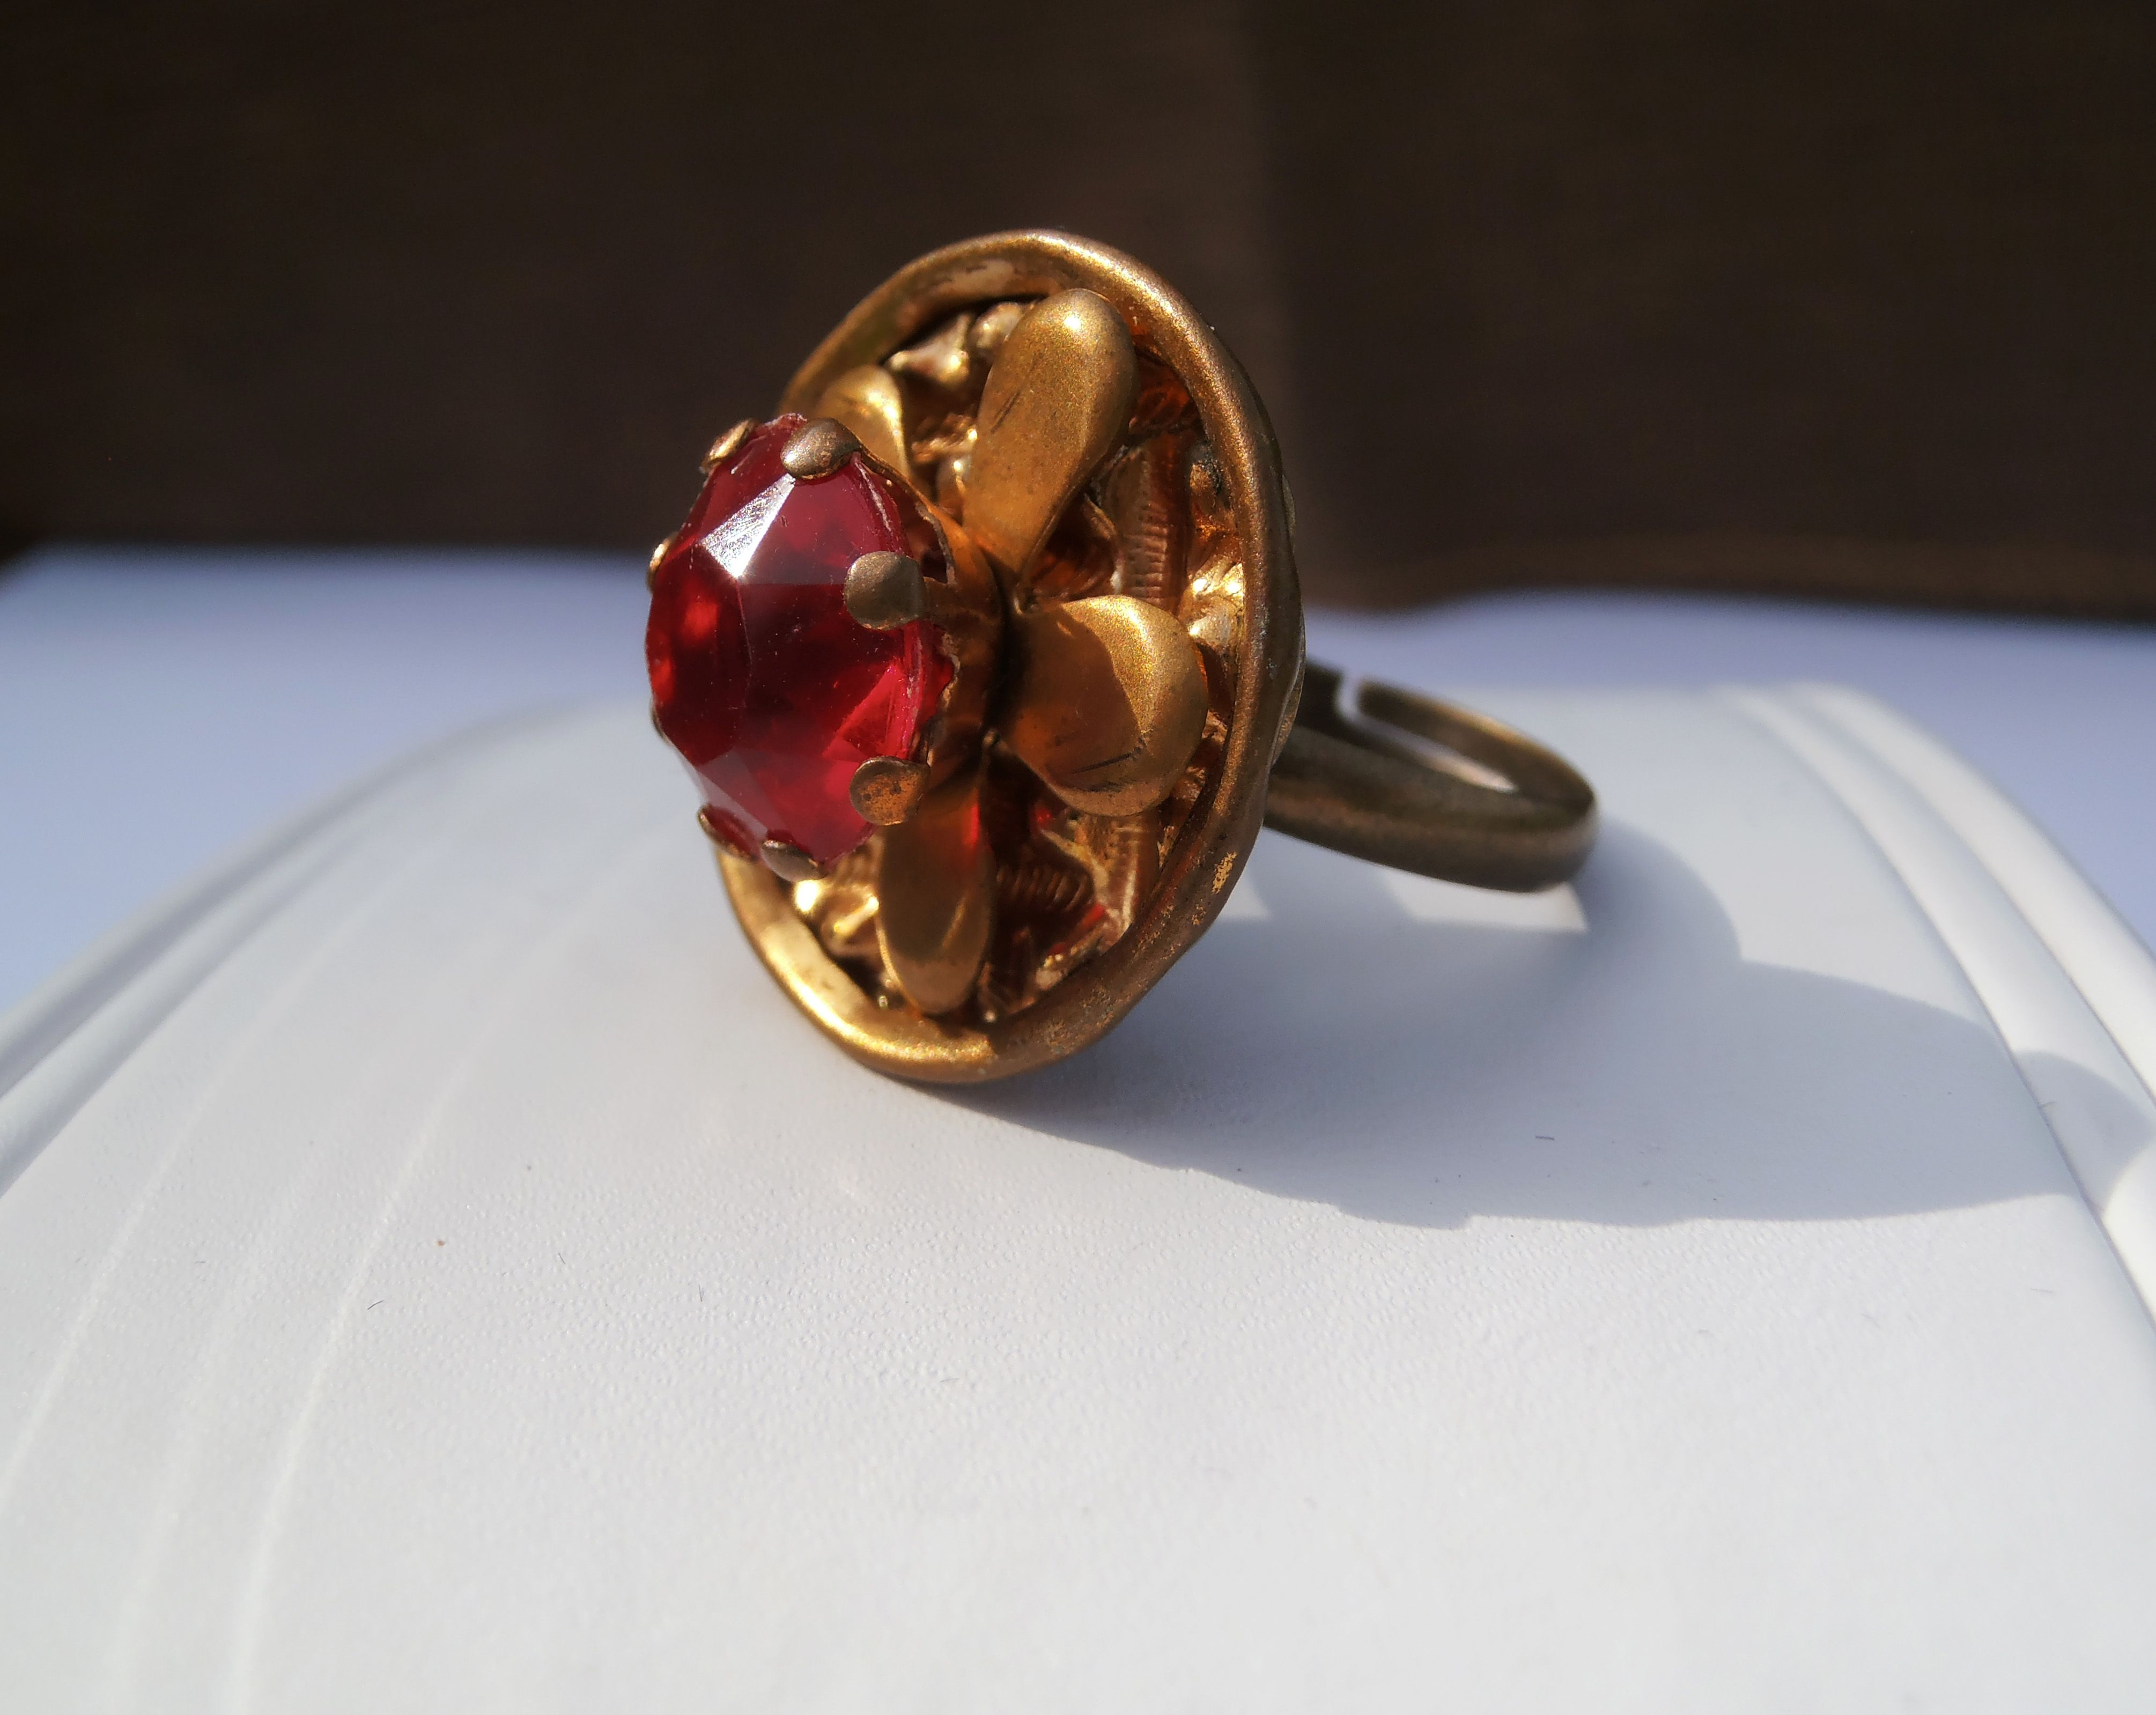 Victorian red ring adjustable  https://www.etsy.com/listing/150033683/vintage-rhinestone-ring-in-ruby-red?ref=shop_home_active